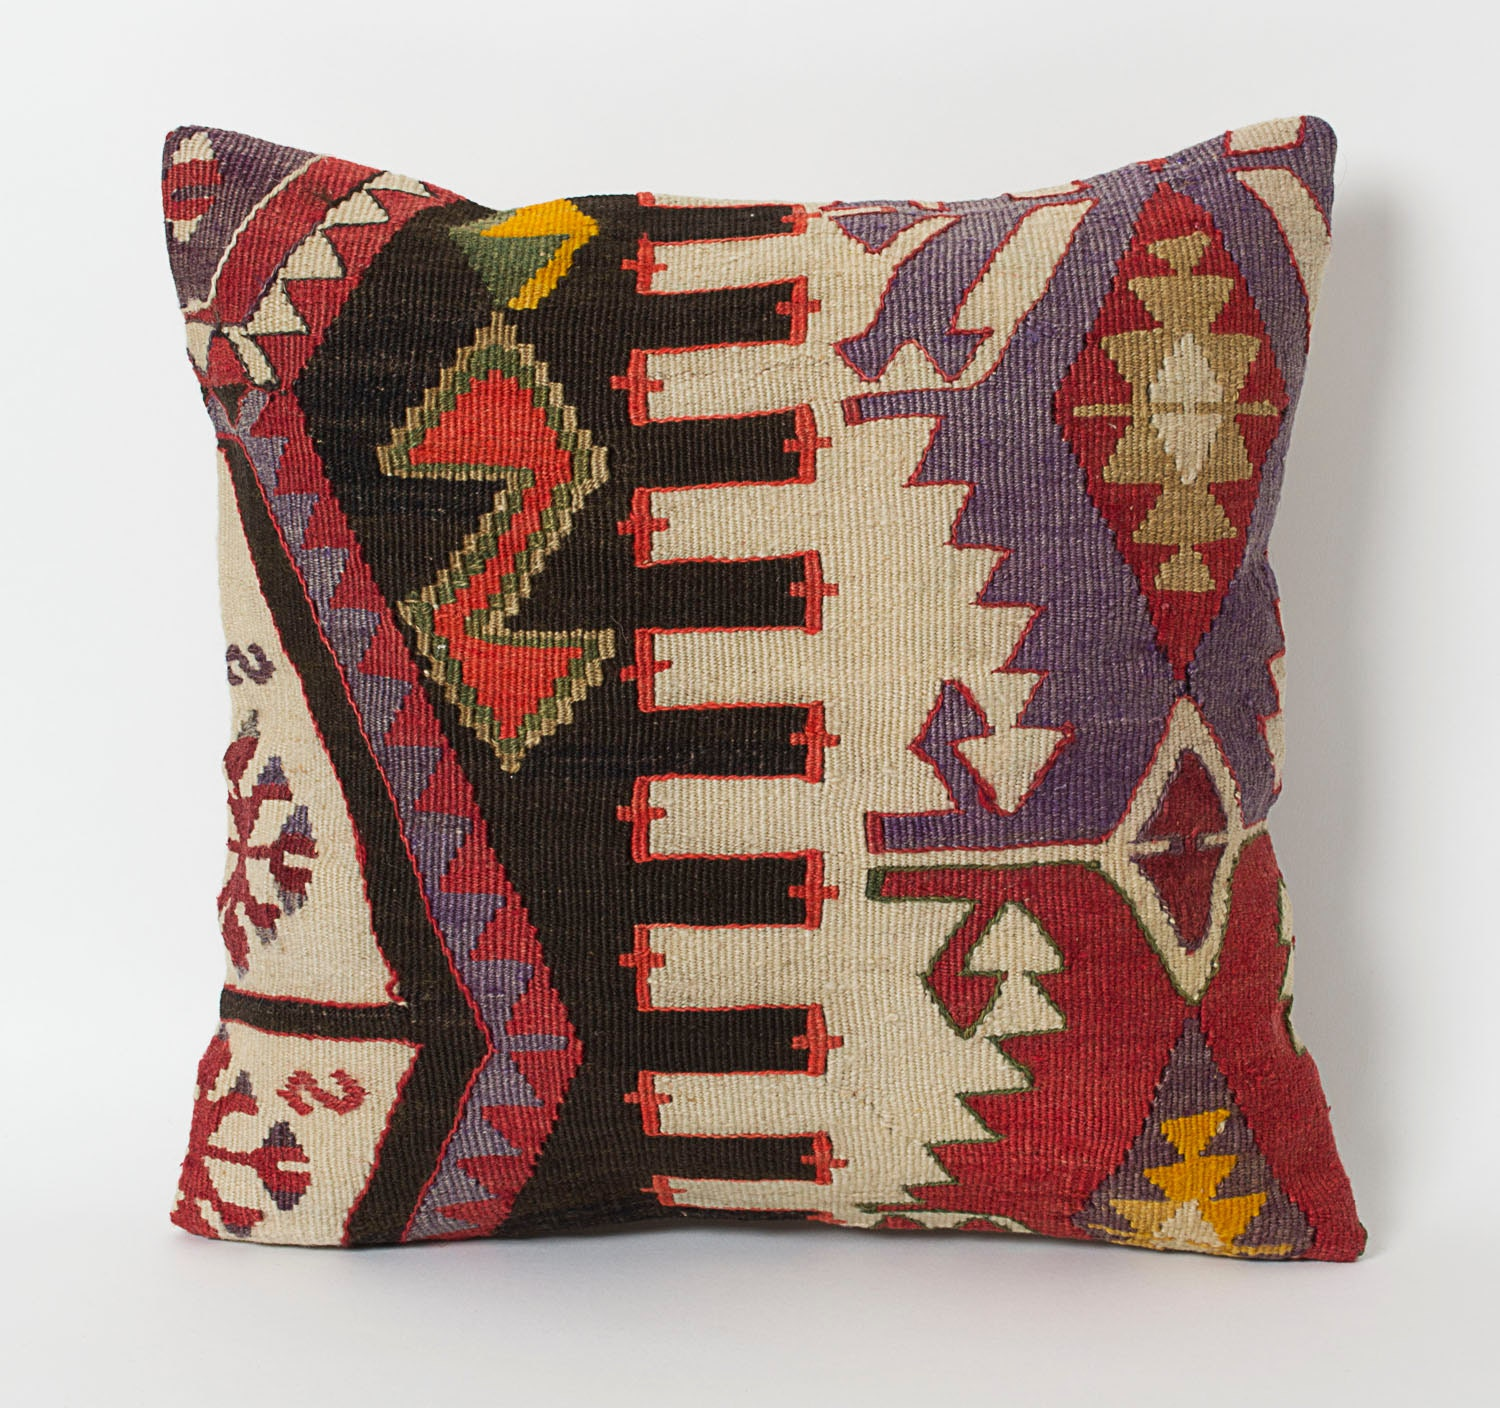 Decorative Pillows Kilim : Decorative Kilim Pillows Couch Pillow Decorative Throw